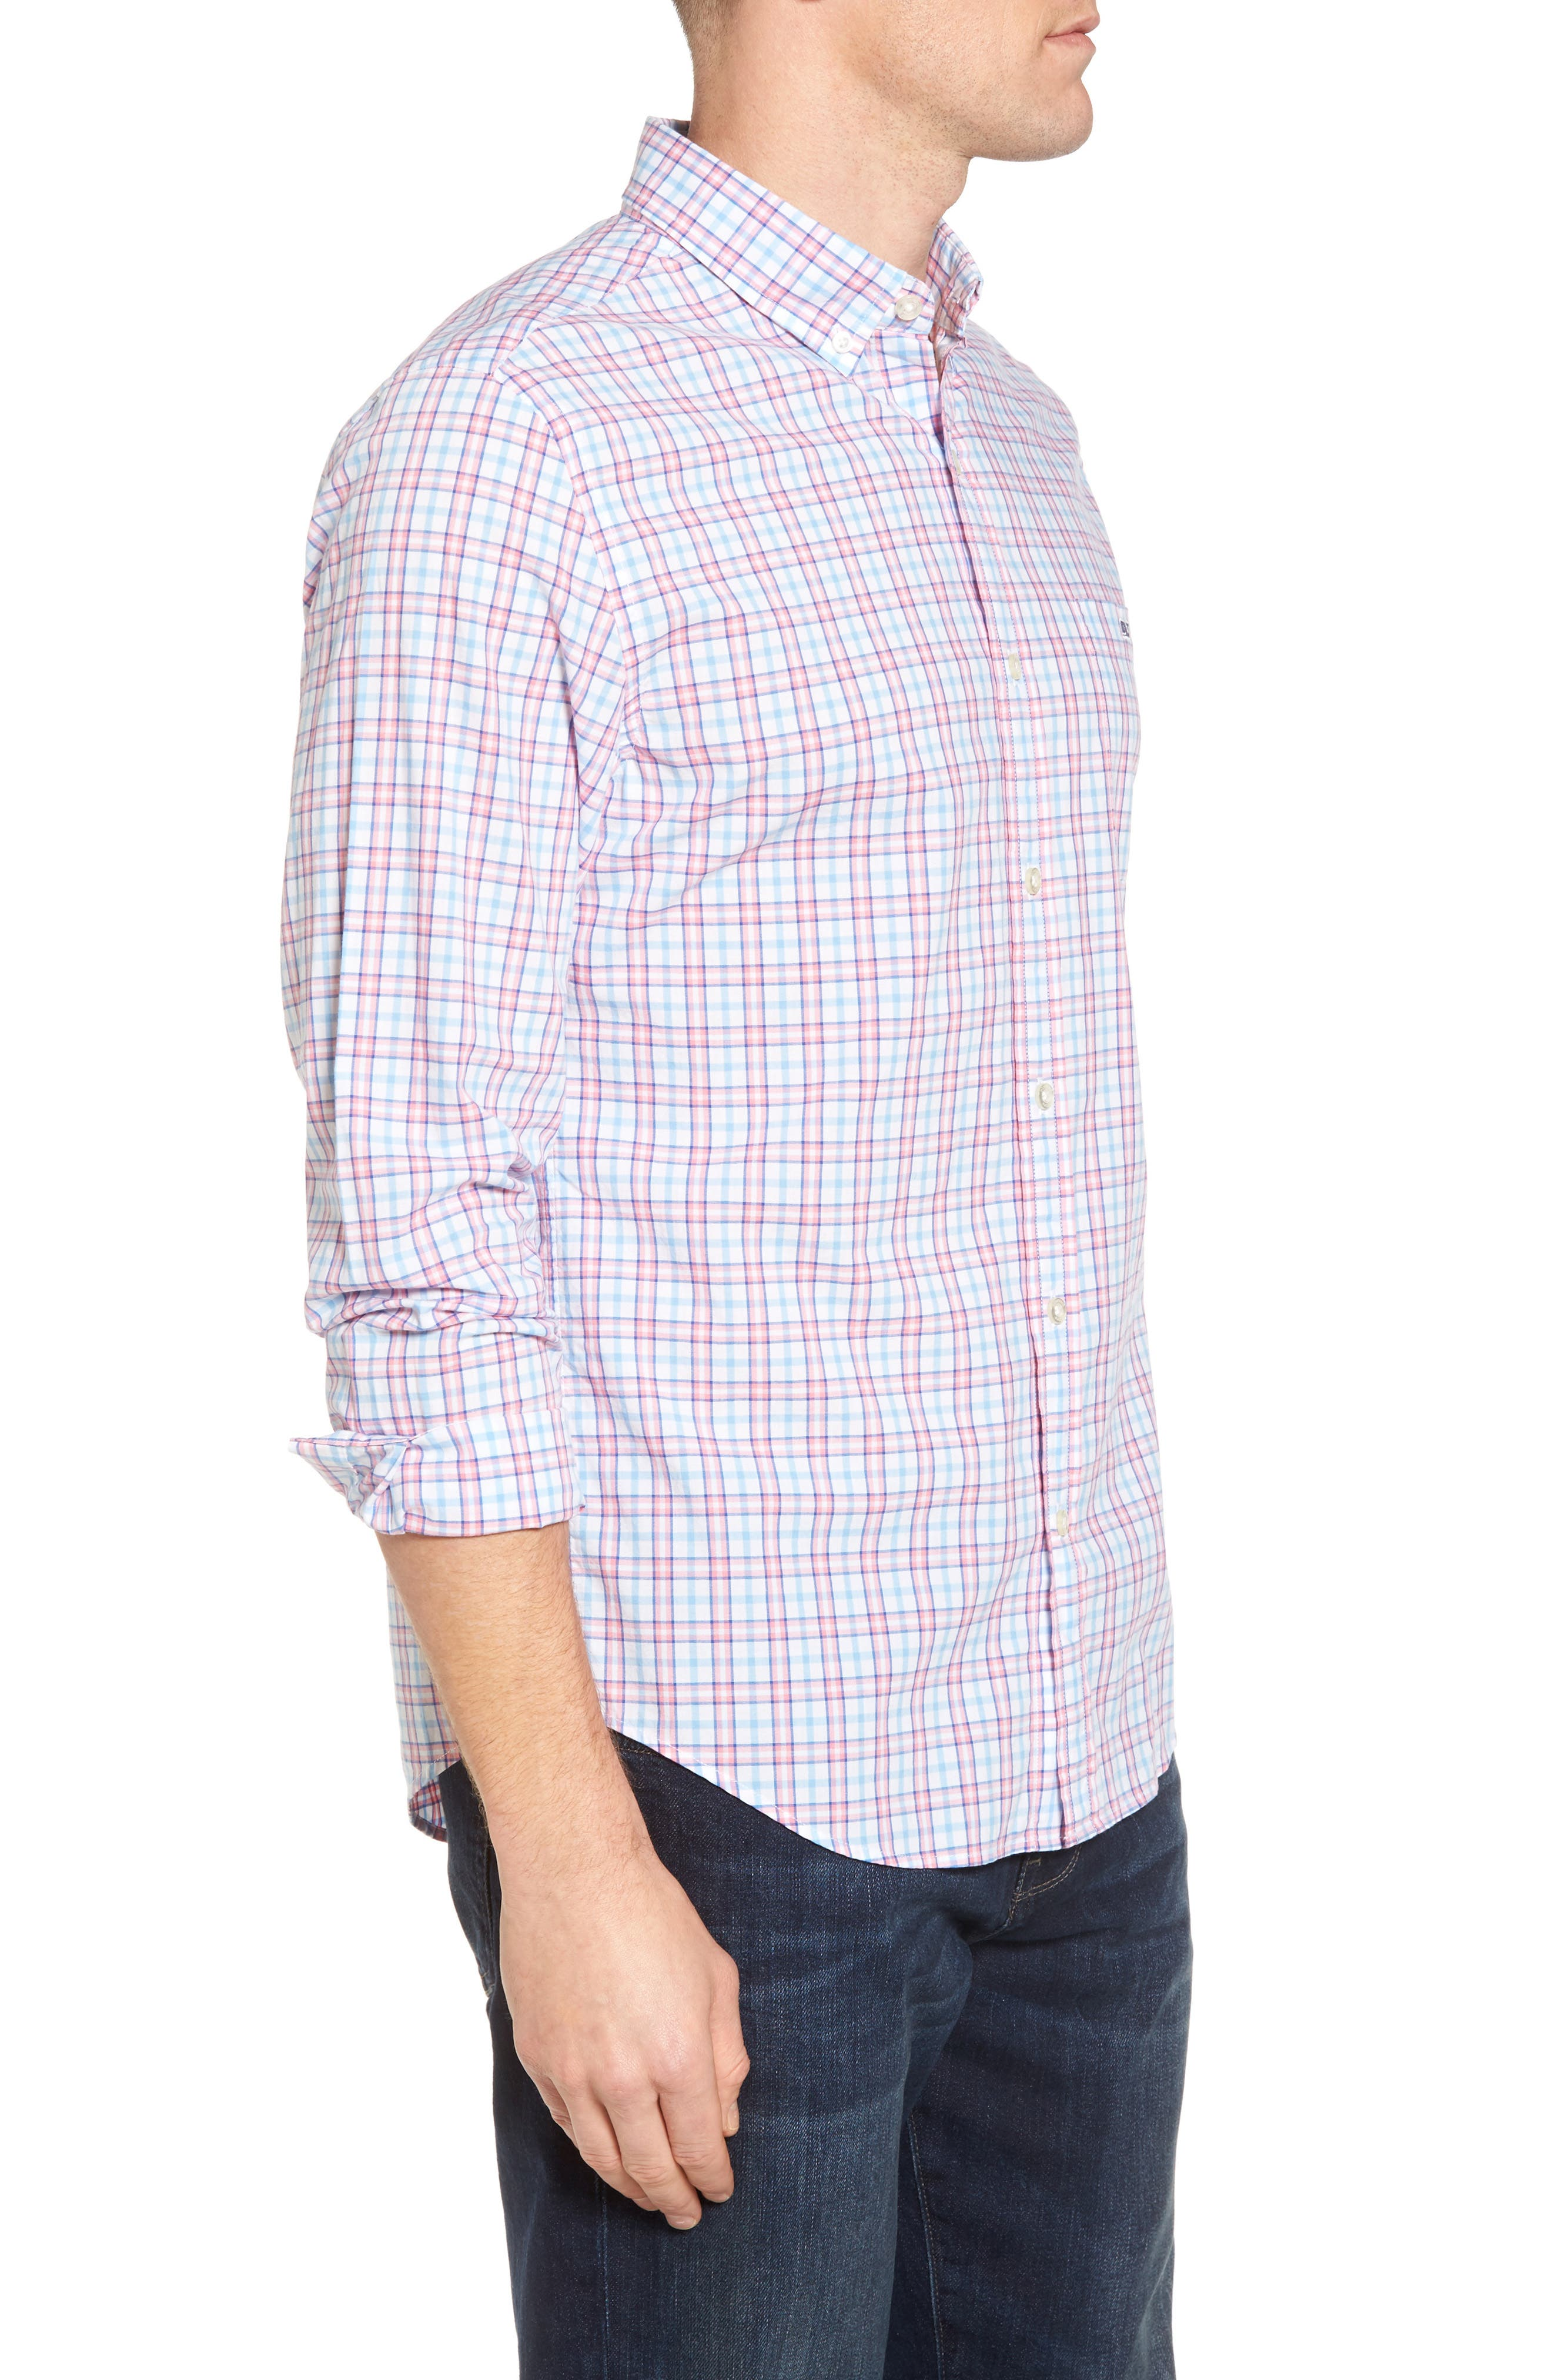 Kennard Tucker Slim Fit Plaid Sport Shirt,                             Alternate thumbnail 2, color,                             Bahama Breeze